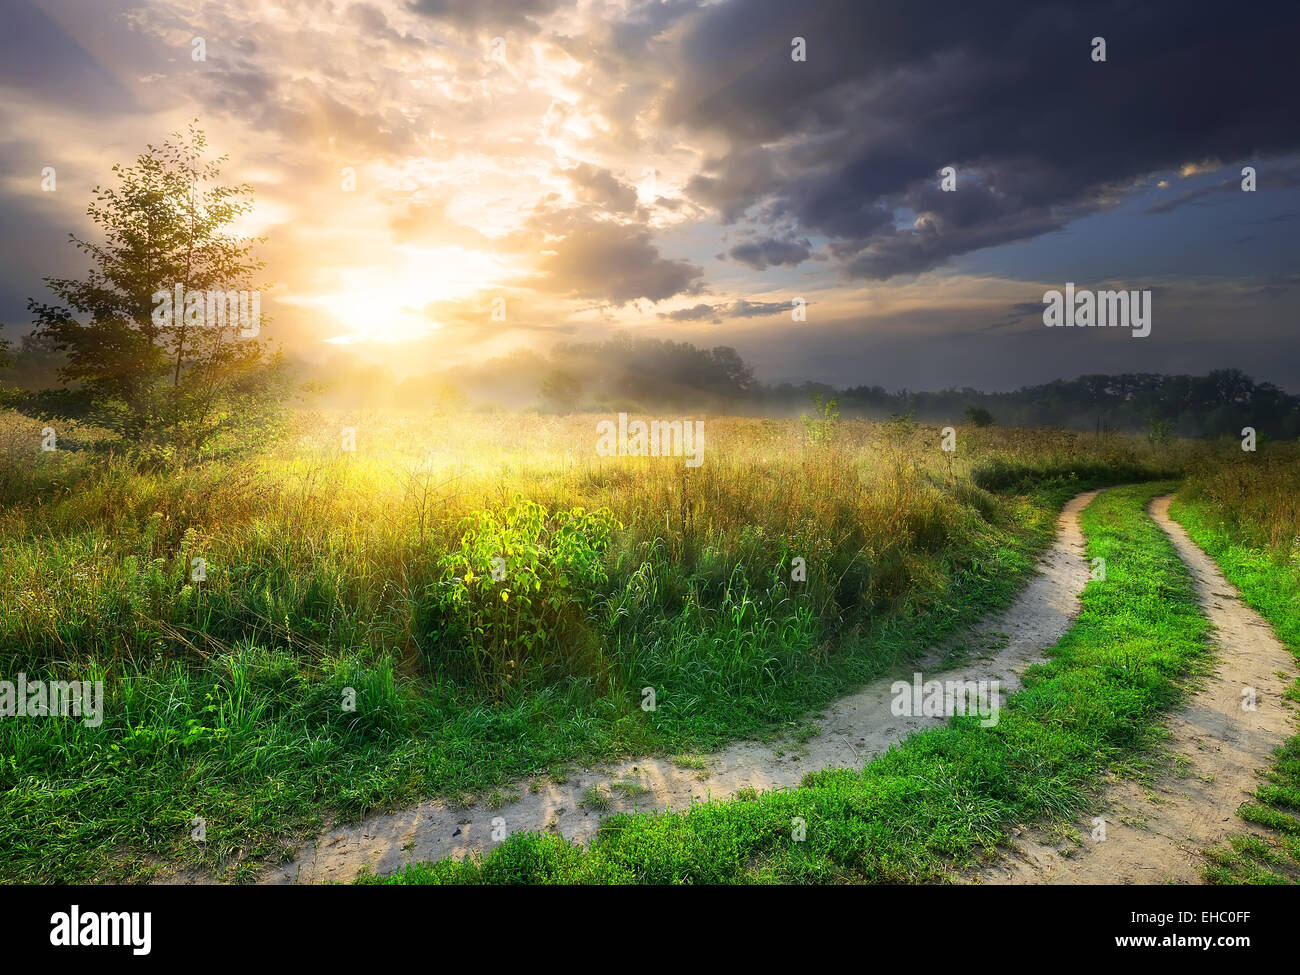 Sun and gray clouds over country road - Stock Image